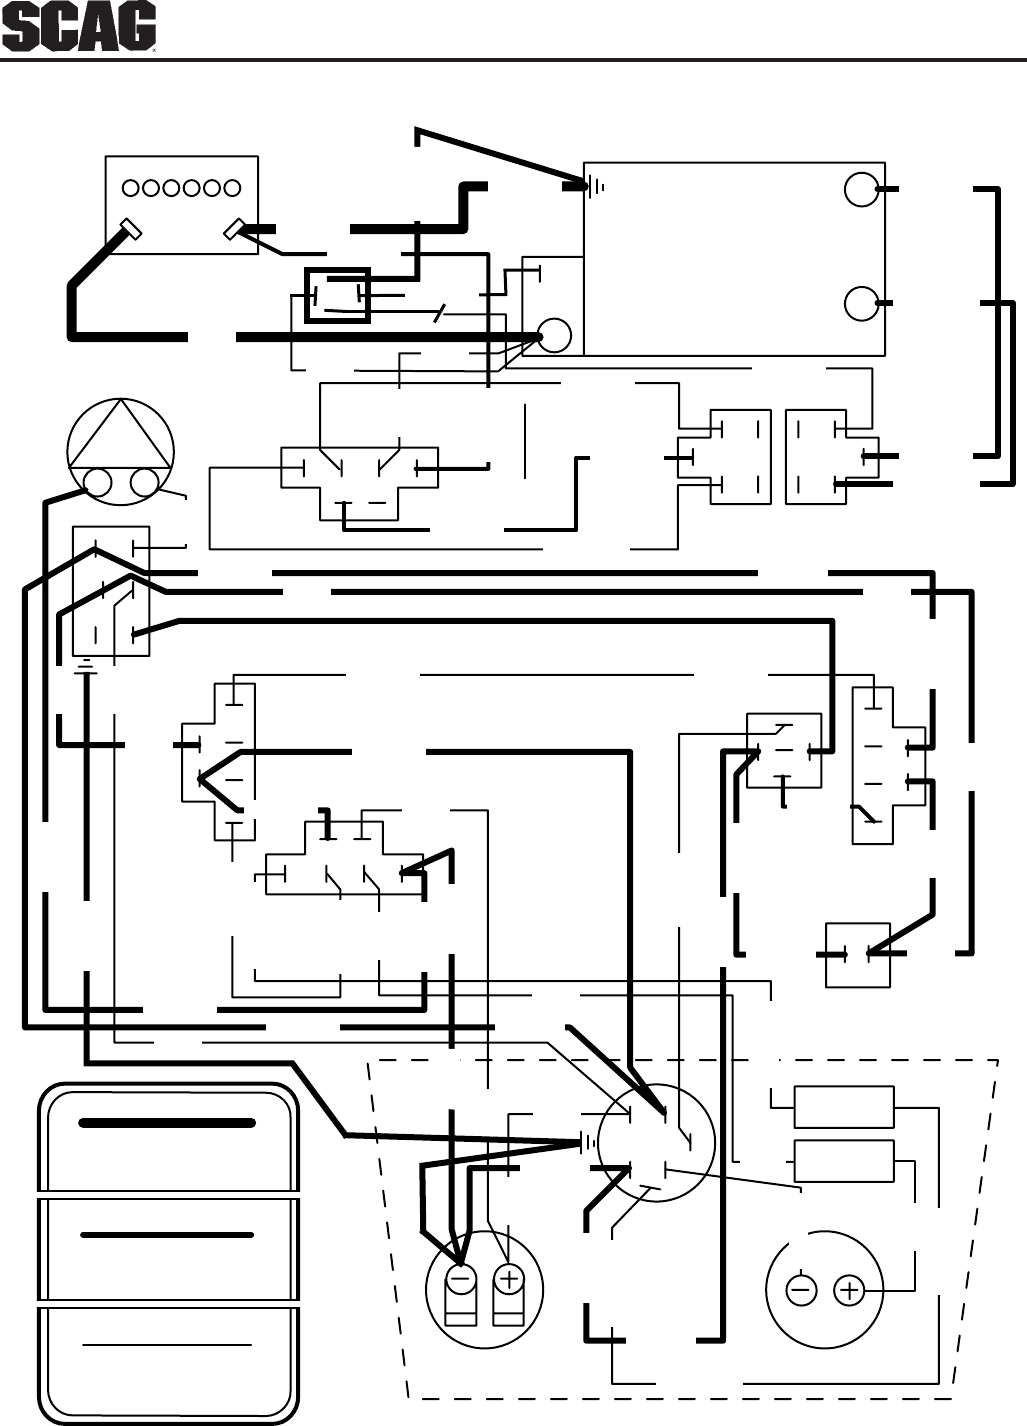 b9ce615b 020e 4d78 97db 0a4906c05276 bg22 scag wiring diagram on scag images free download wiring diagrams  at sewacar.co